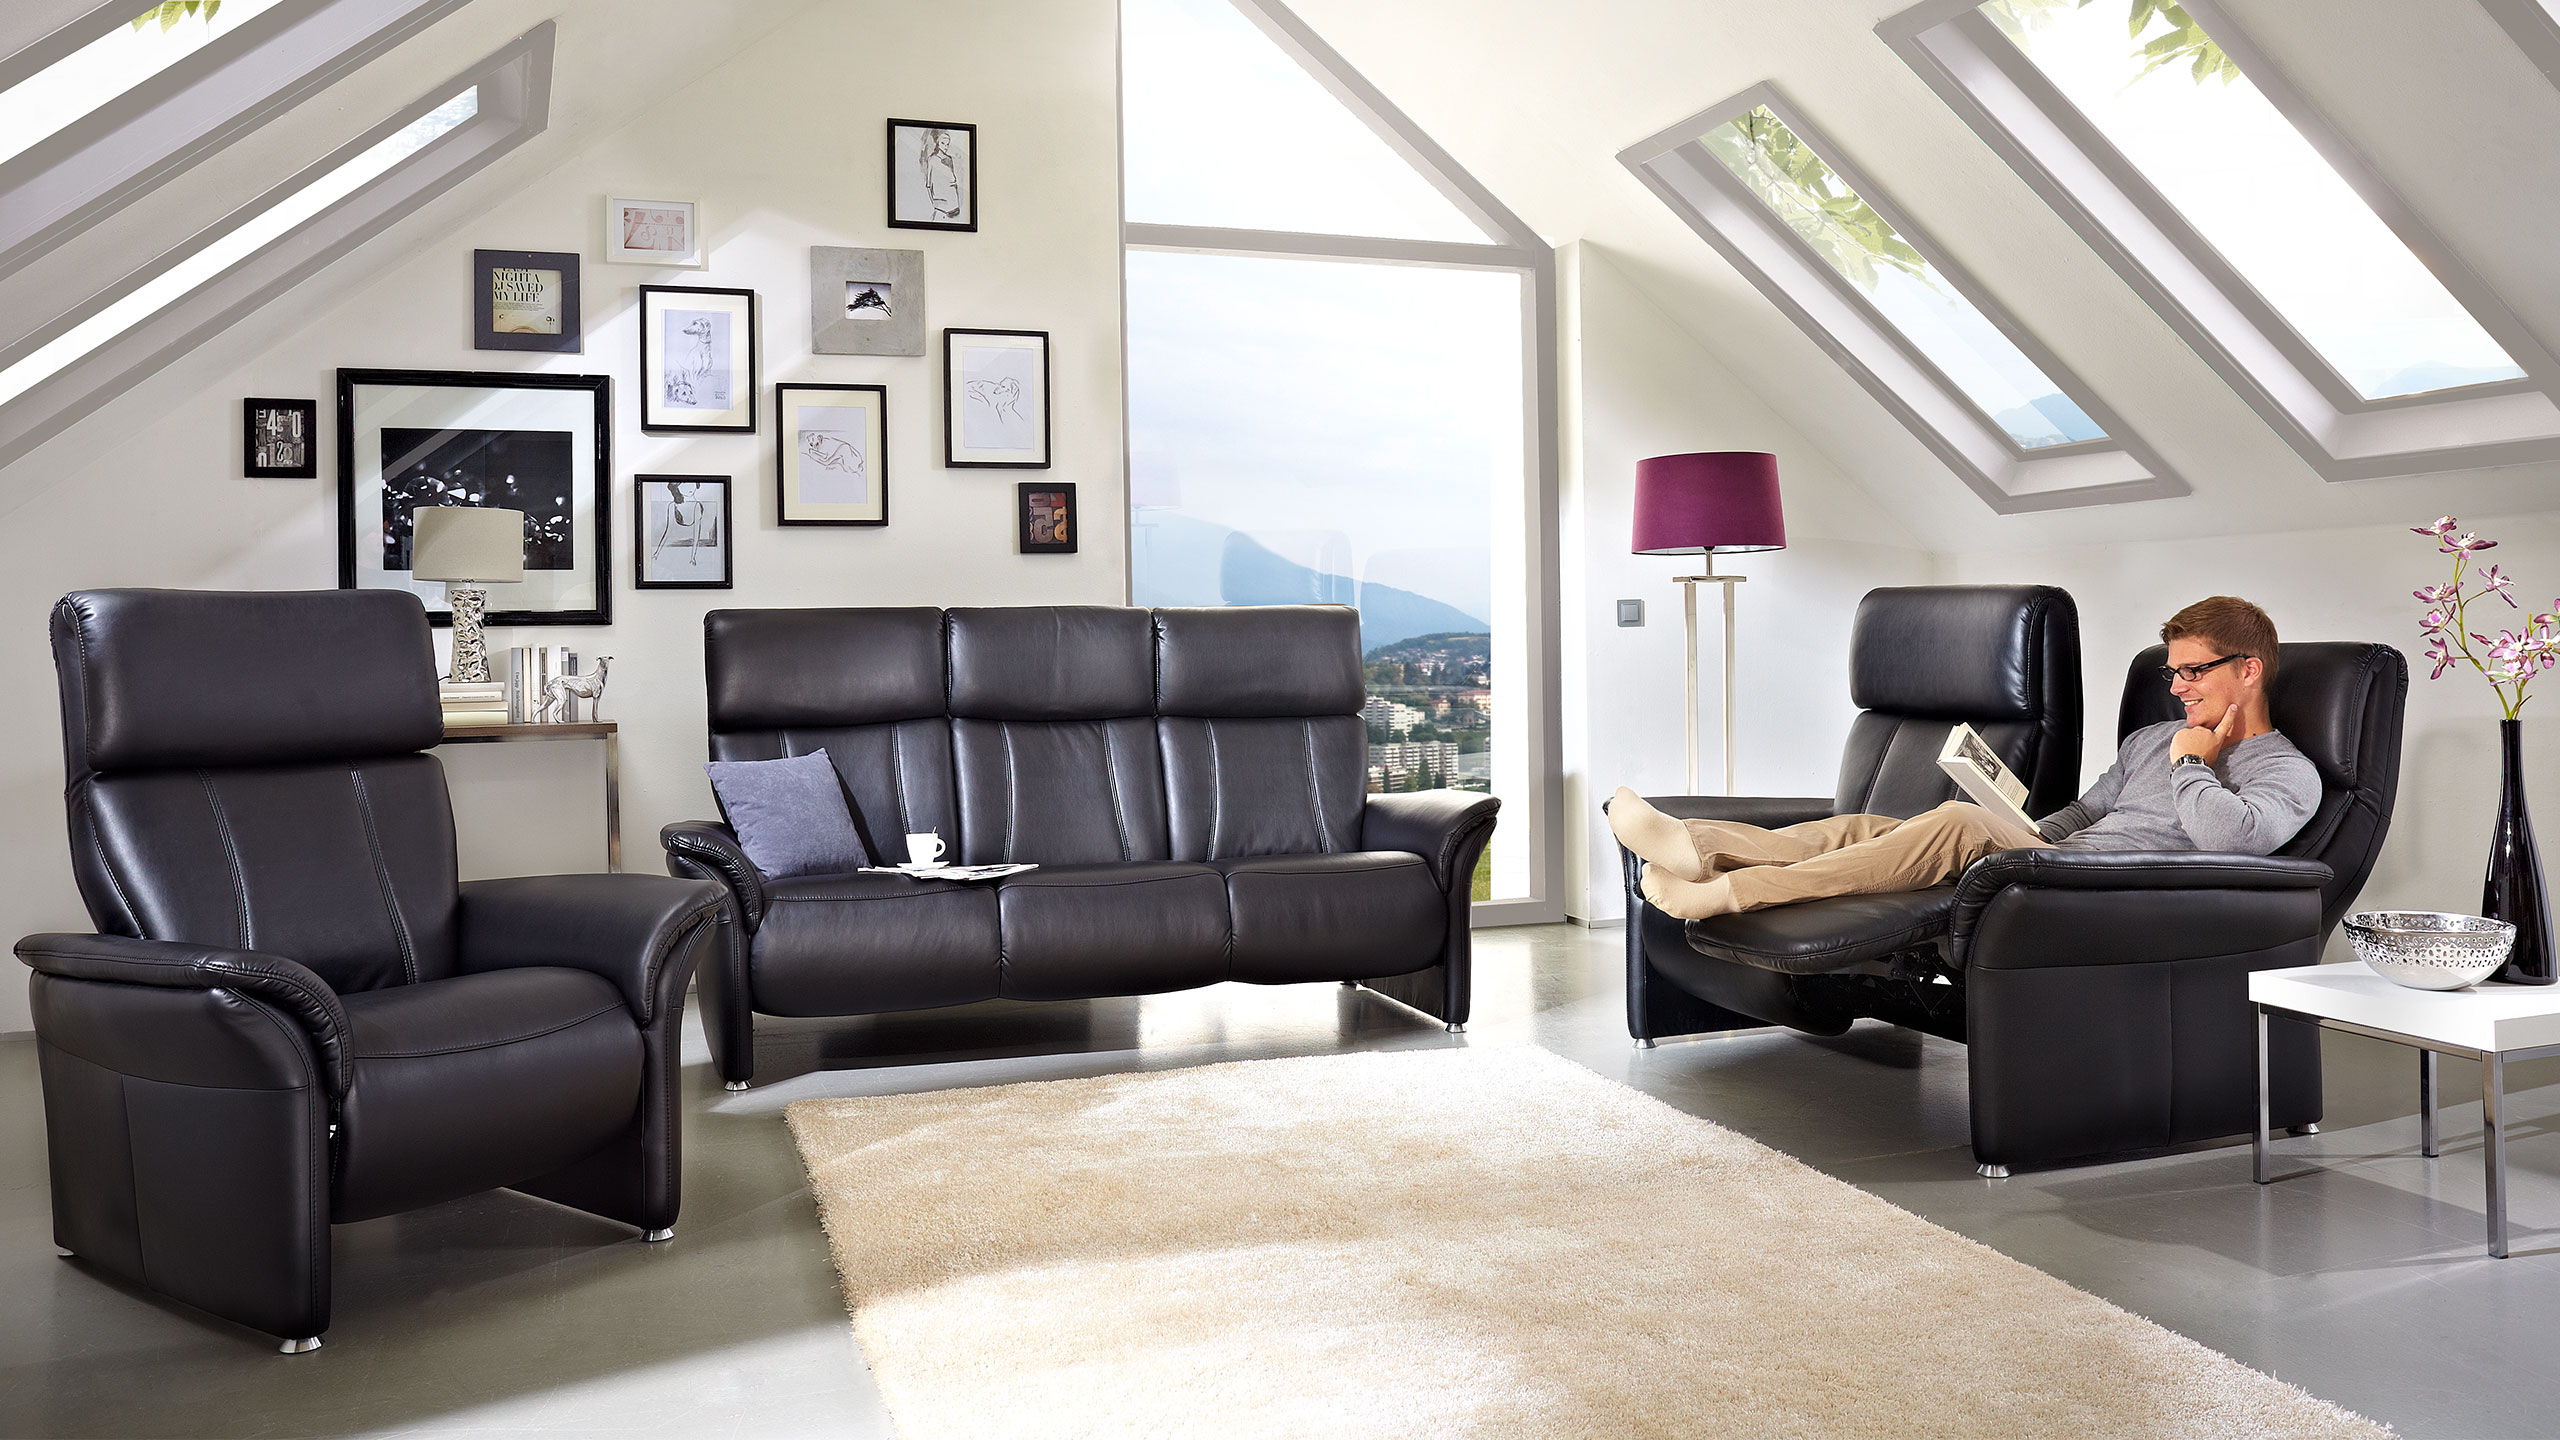 Magic Comfort Sofa 209 cm Kunstleder Schwarz